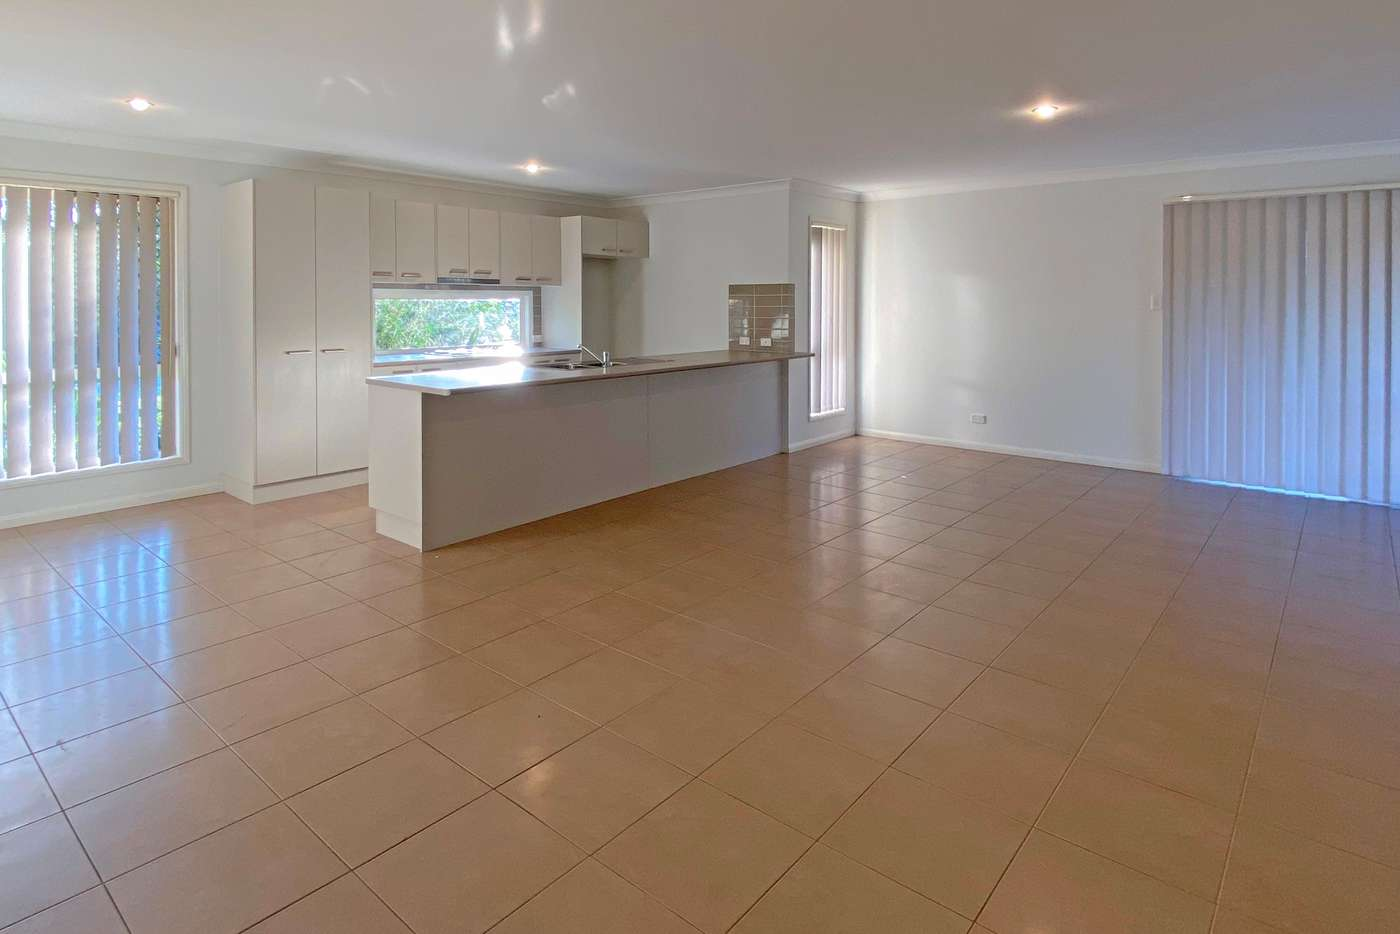 Sixth view of Homely house listing, 6 PRO HART CLOSE, Brassall QLD 4305